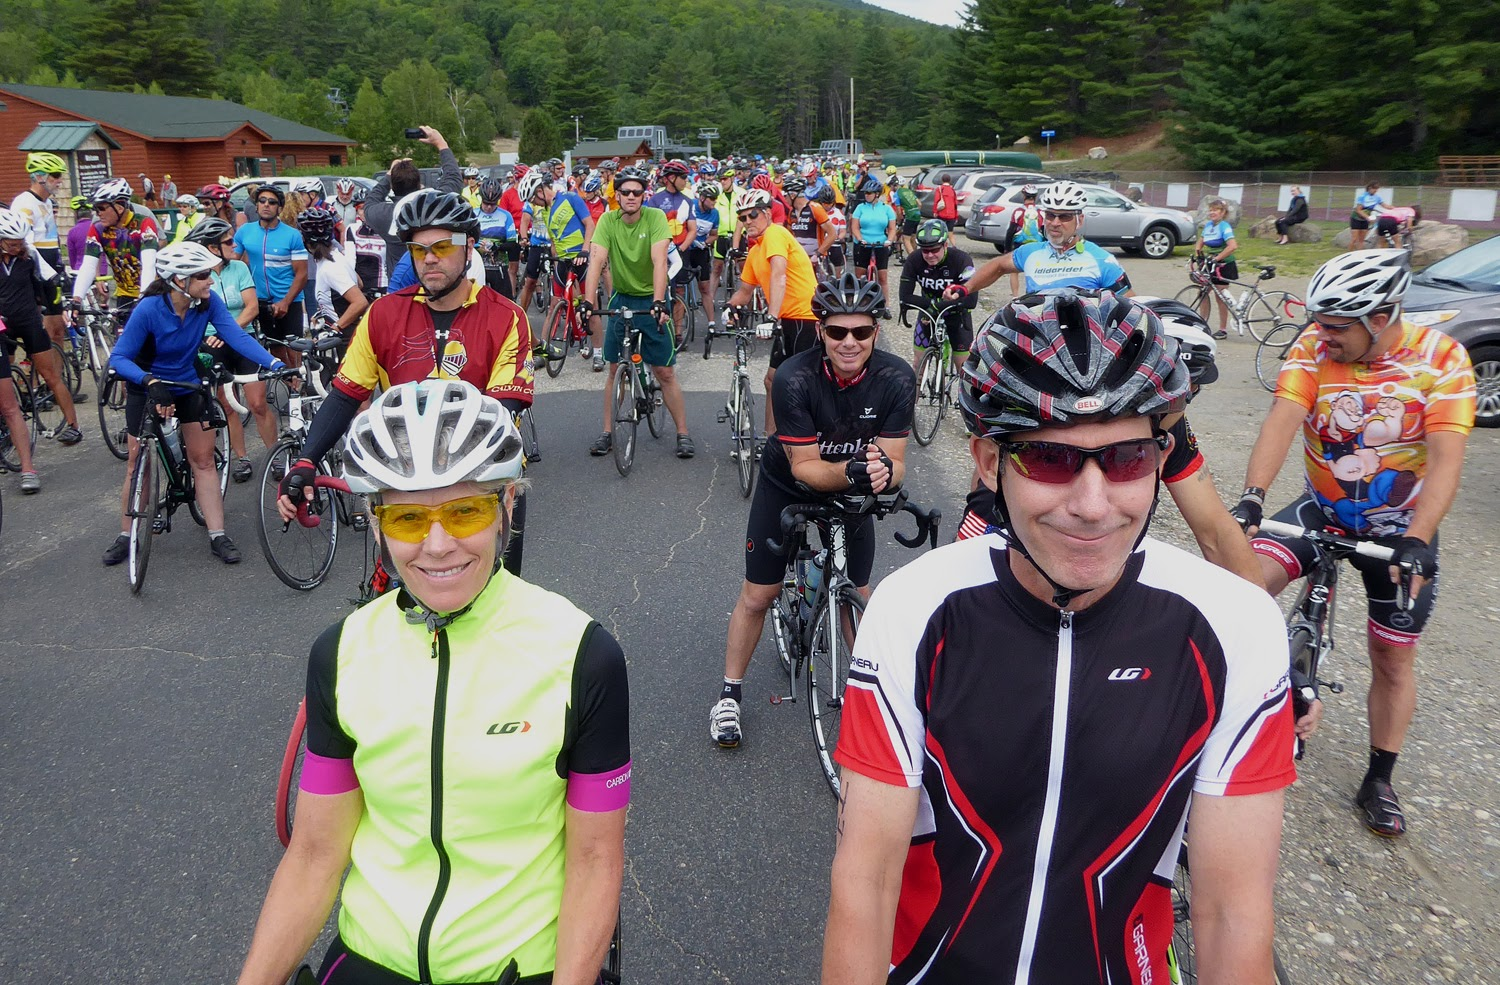 Riders wait for the start of the 2016 Ididaride.   Copyright by Dave Kraus/ Krausgrafik.com